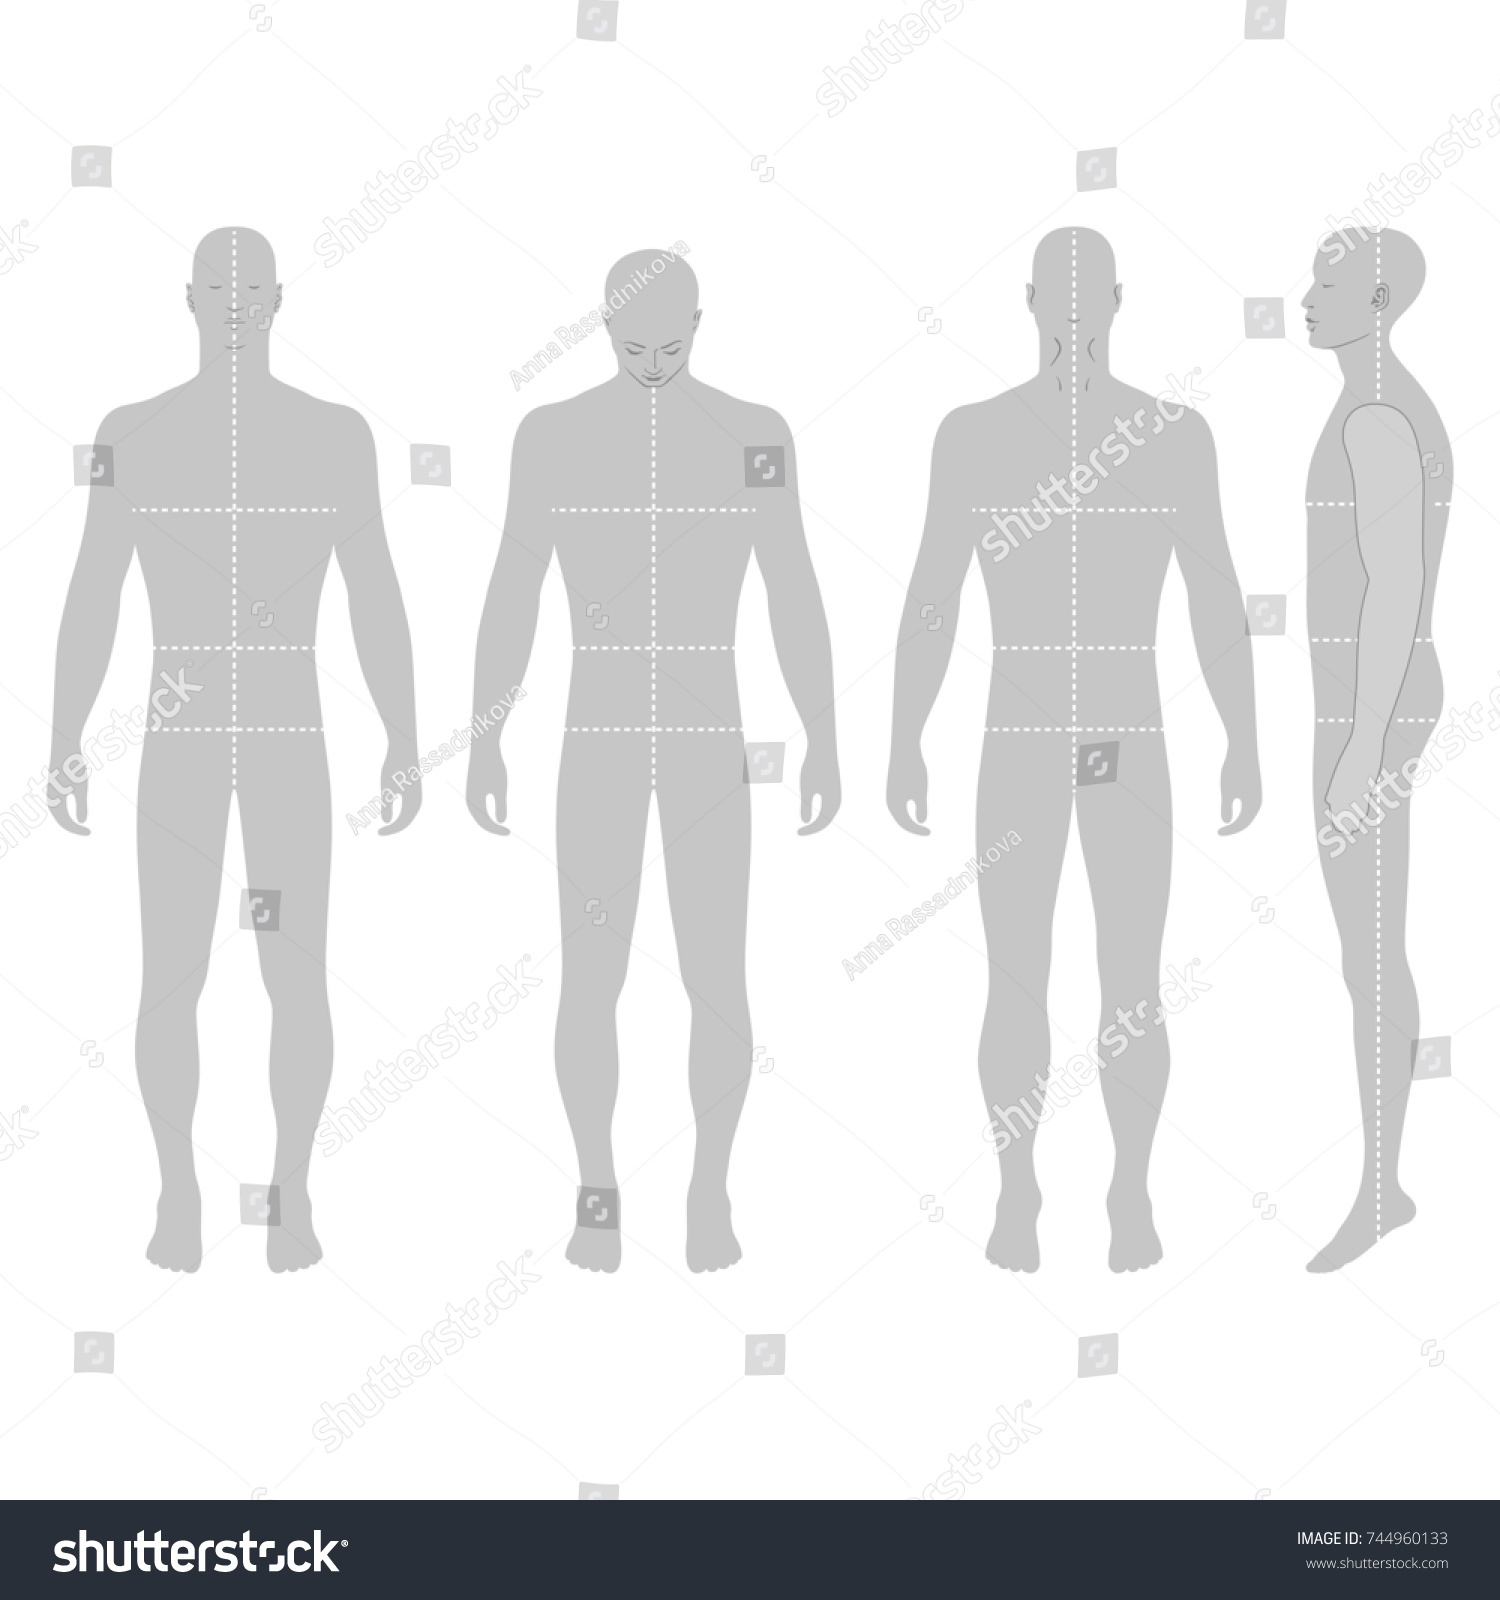 Fashion Body Full Length Bald Template Stock Illustration 744960133 ...